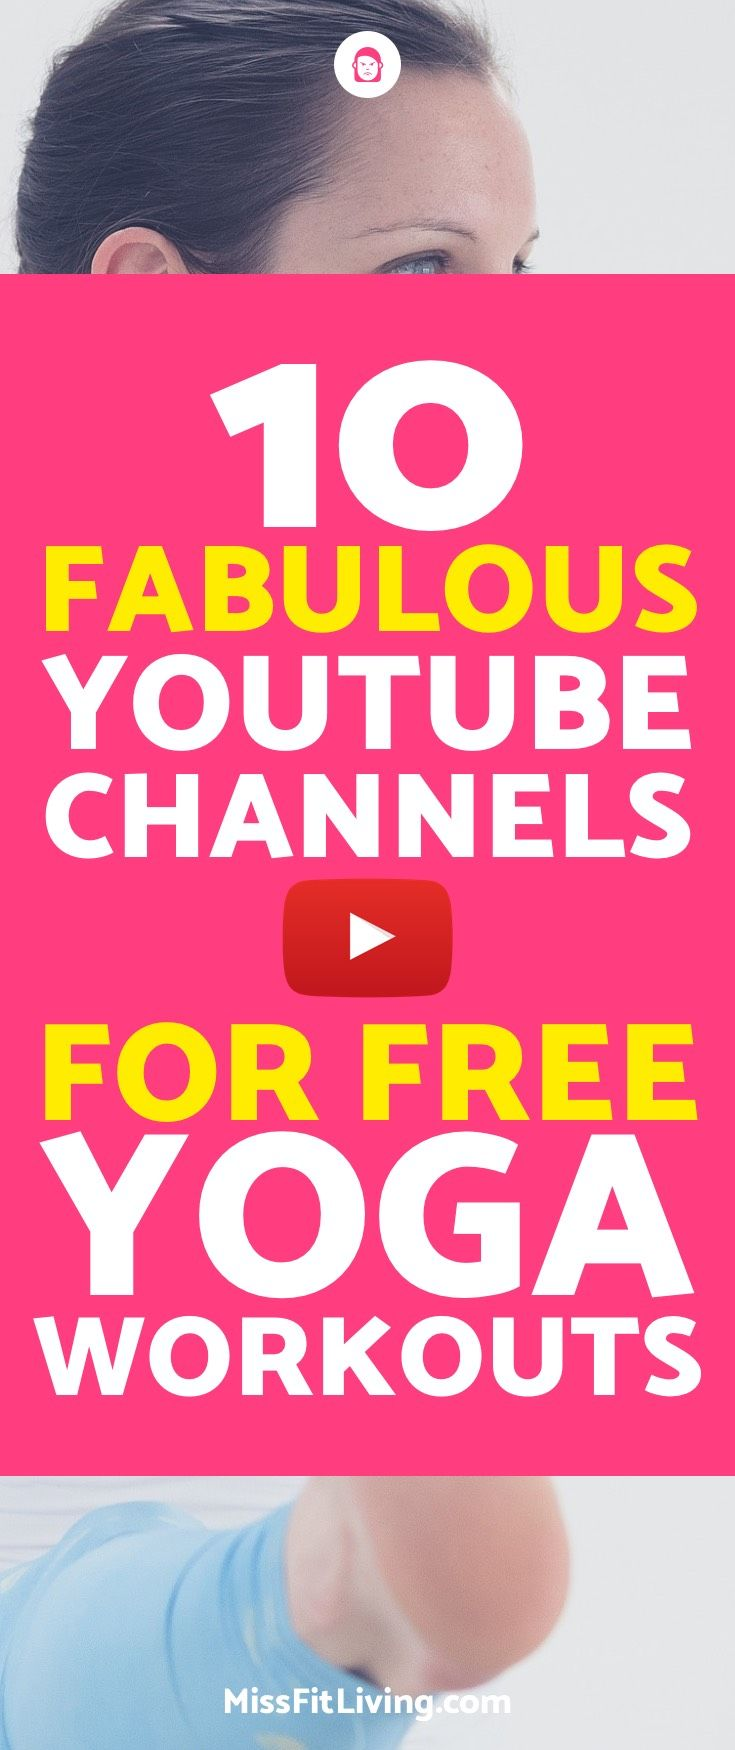 Looking for awesome yoga workouts to help you lose weight and gain flexibility? ...